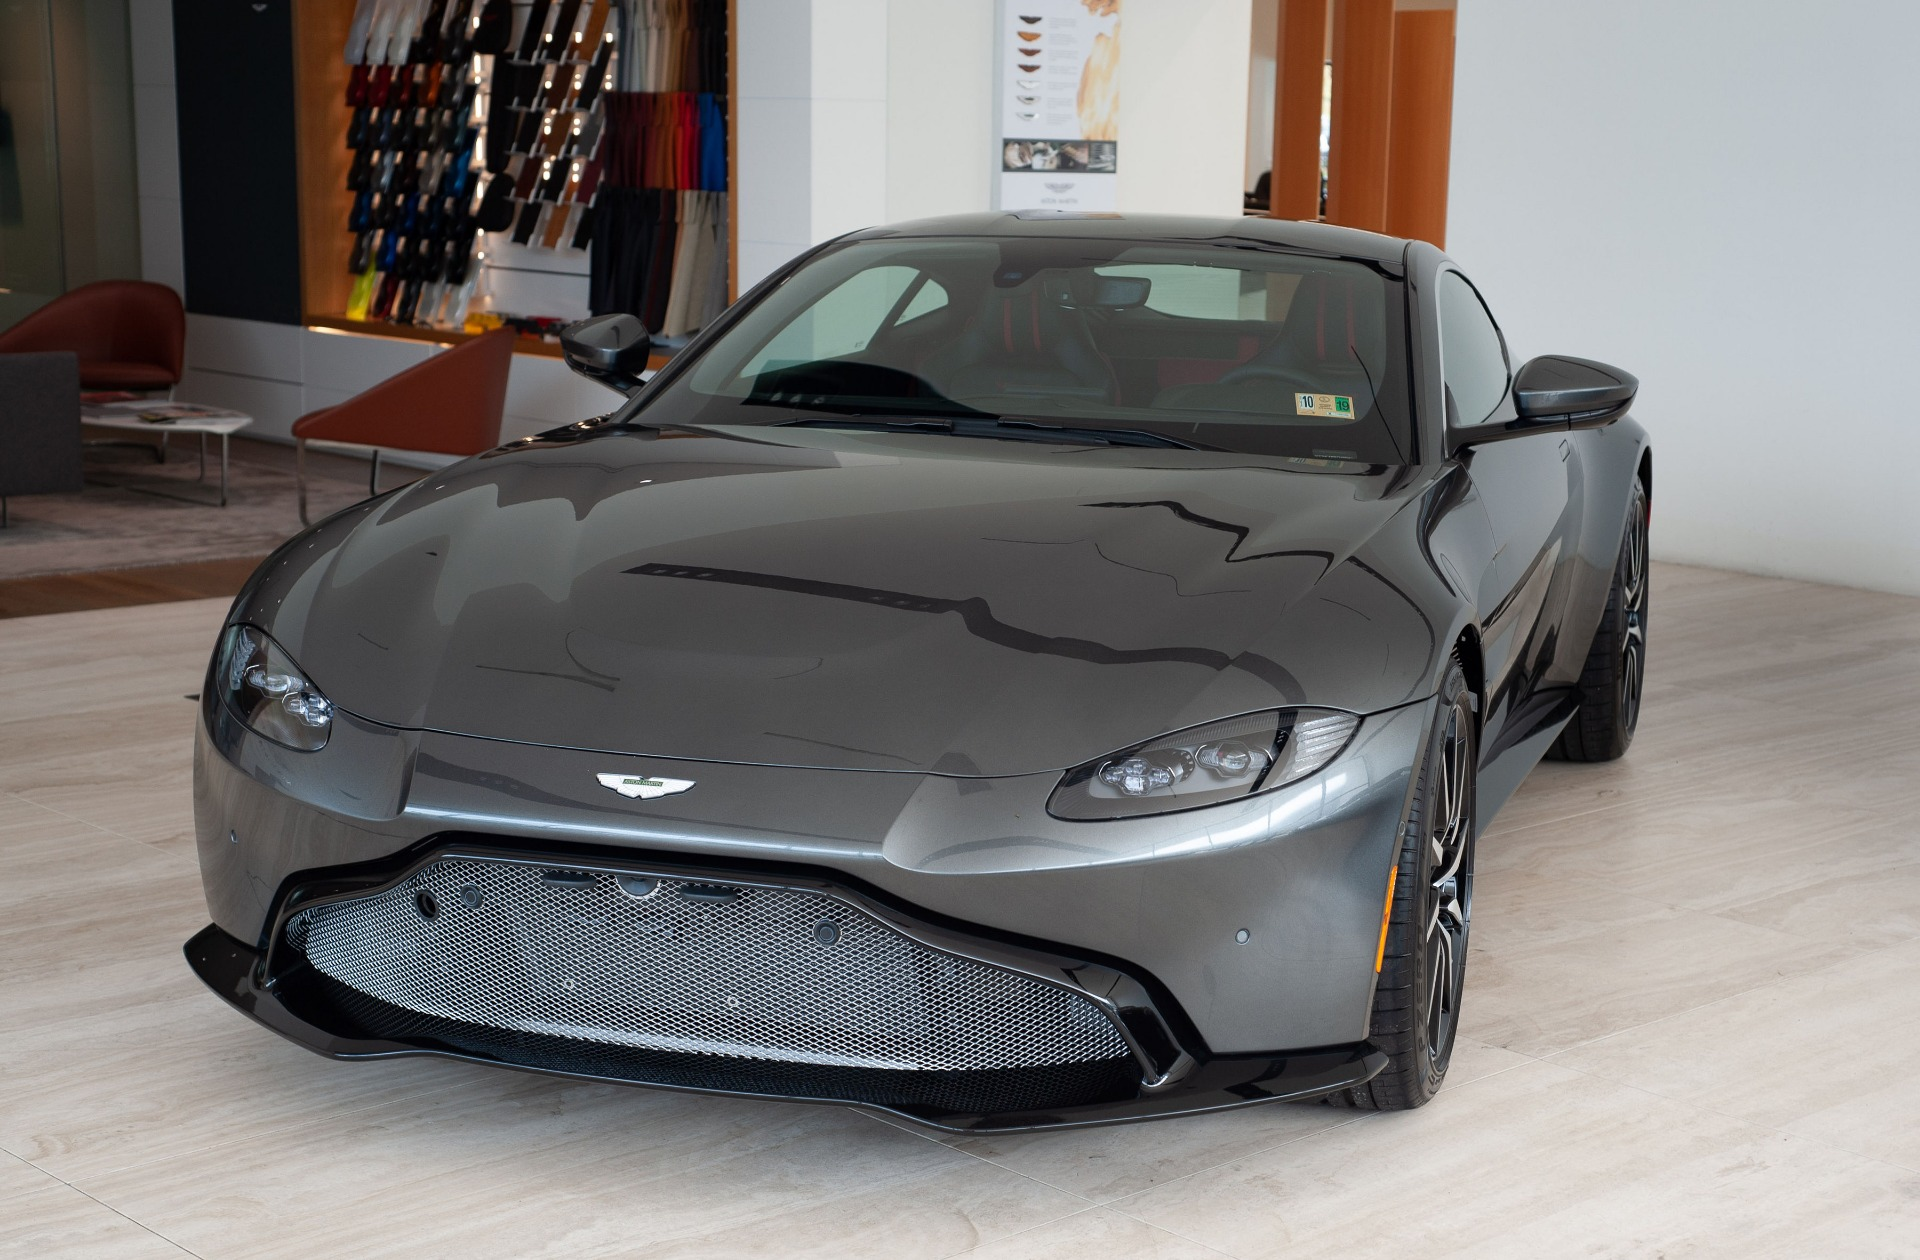 2019 Aston Martin Vantage Stock 9nn00941 For Sale Near Vienna Va